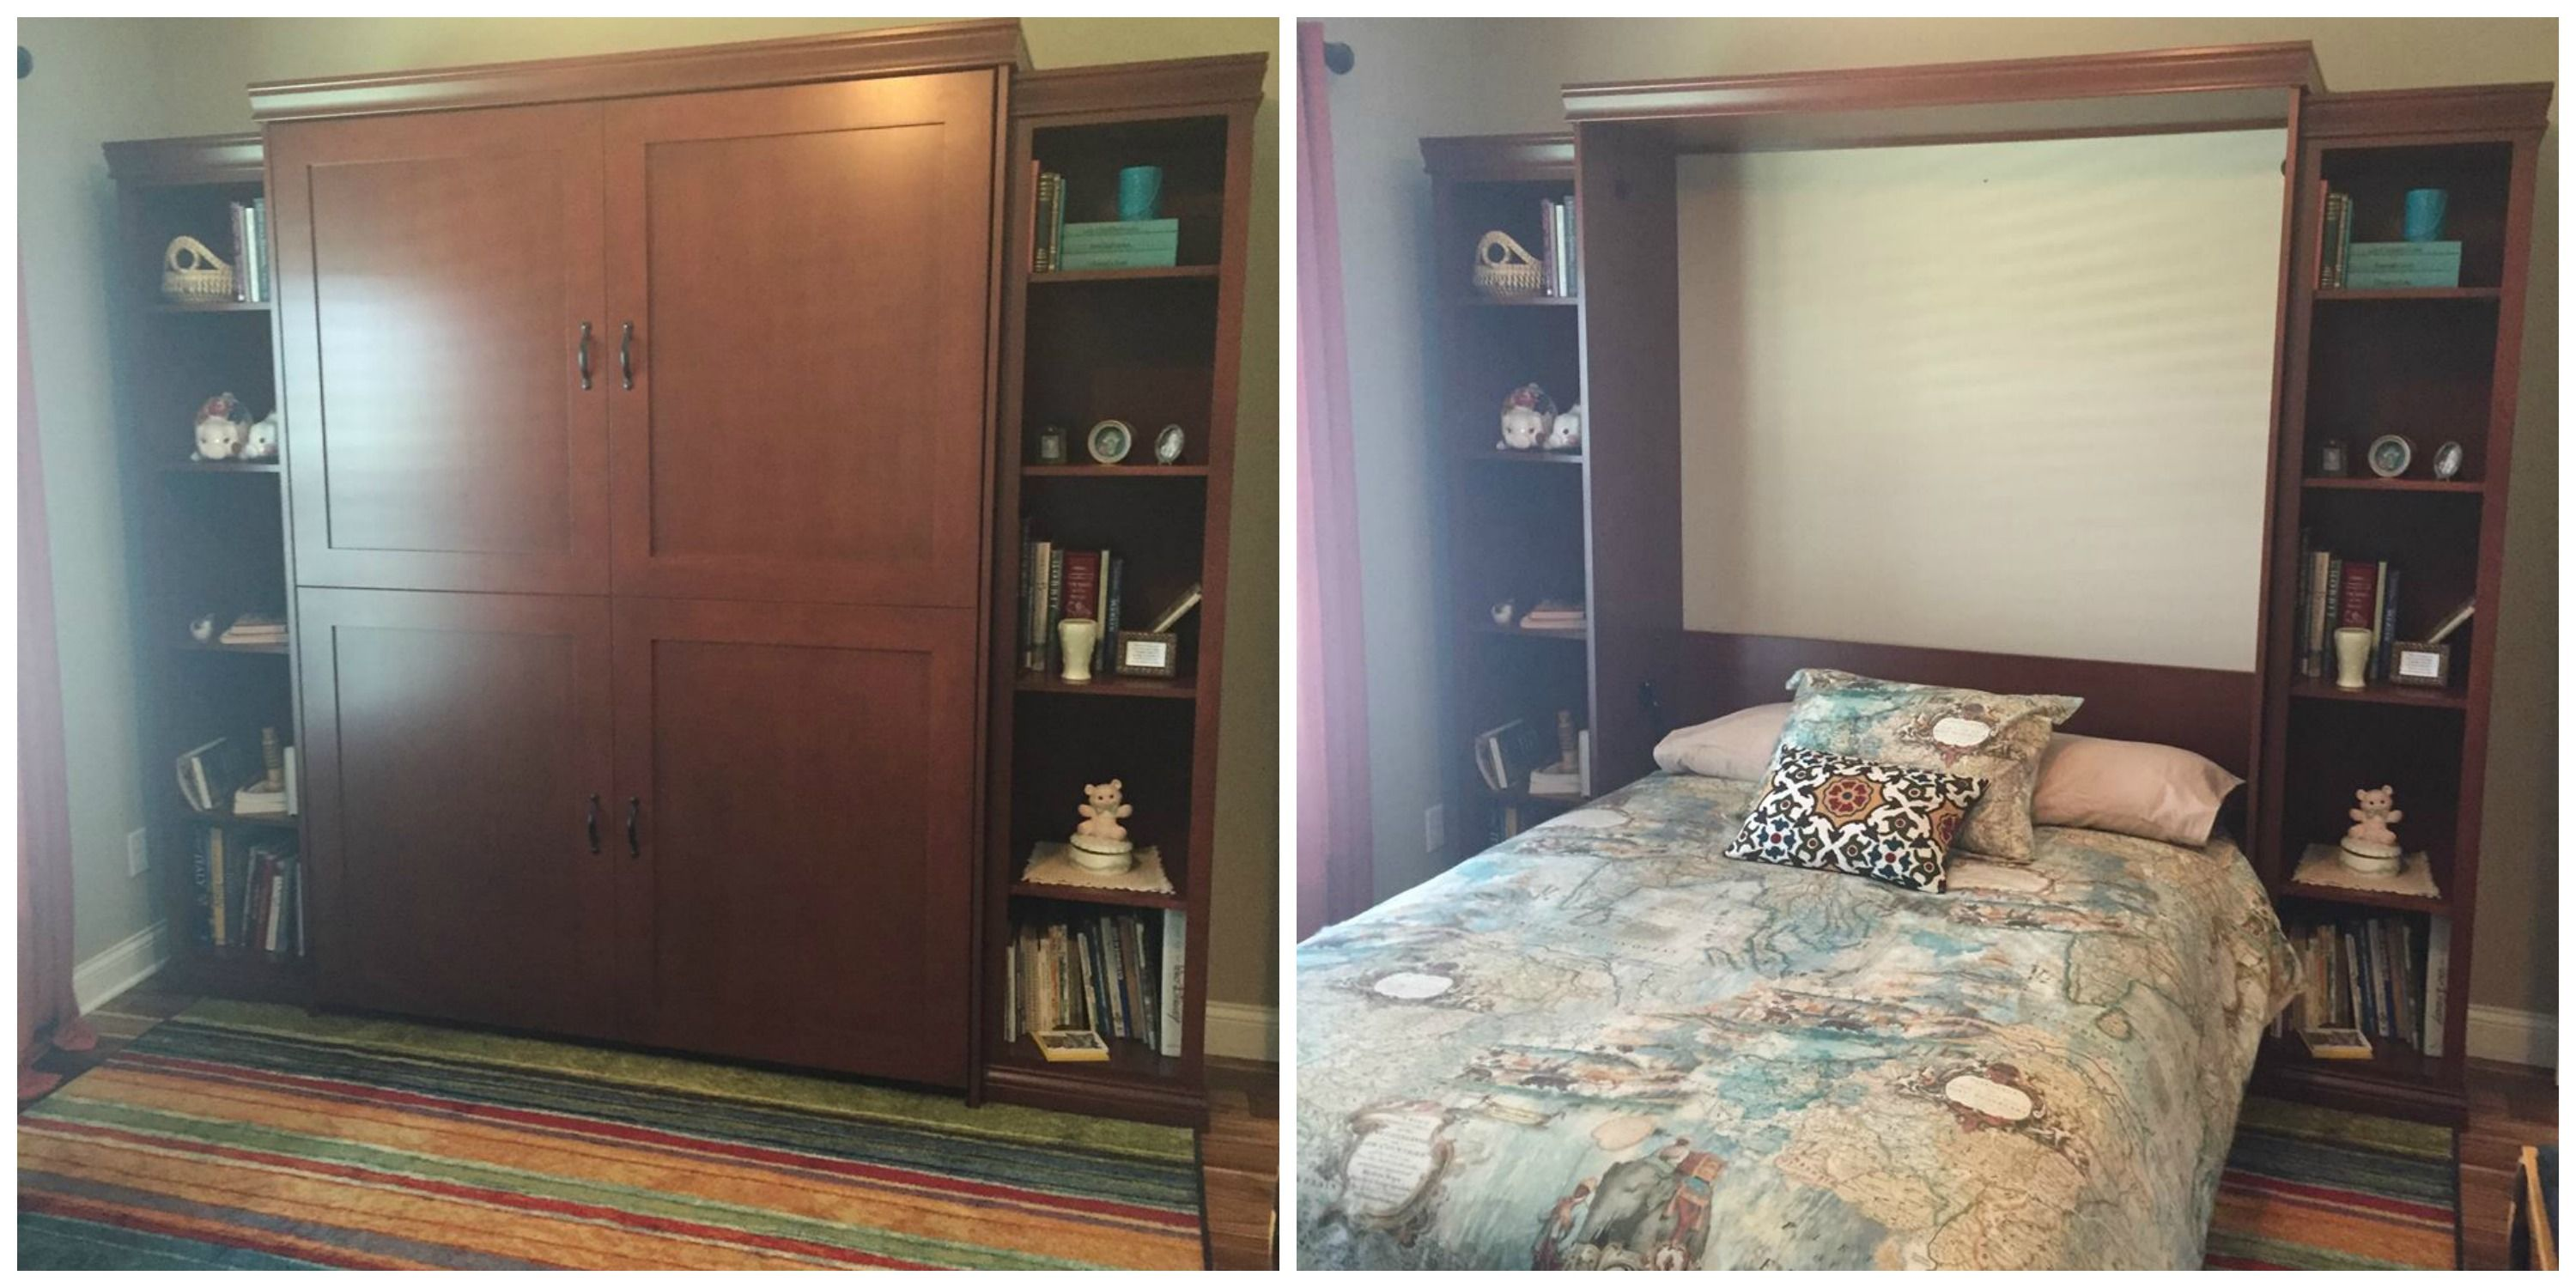 Our customer from Centerville, Ohio chose the BedderWay